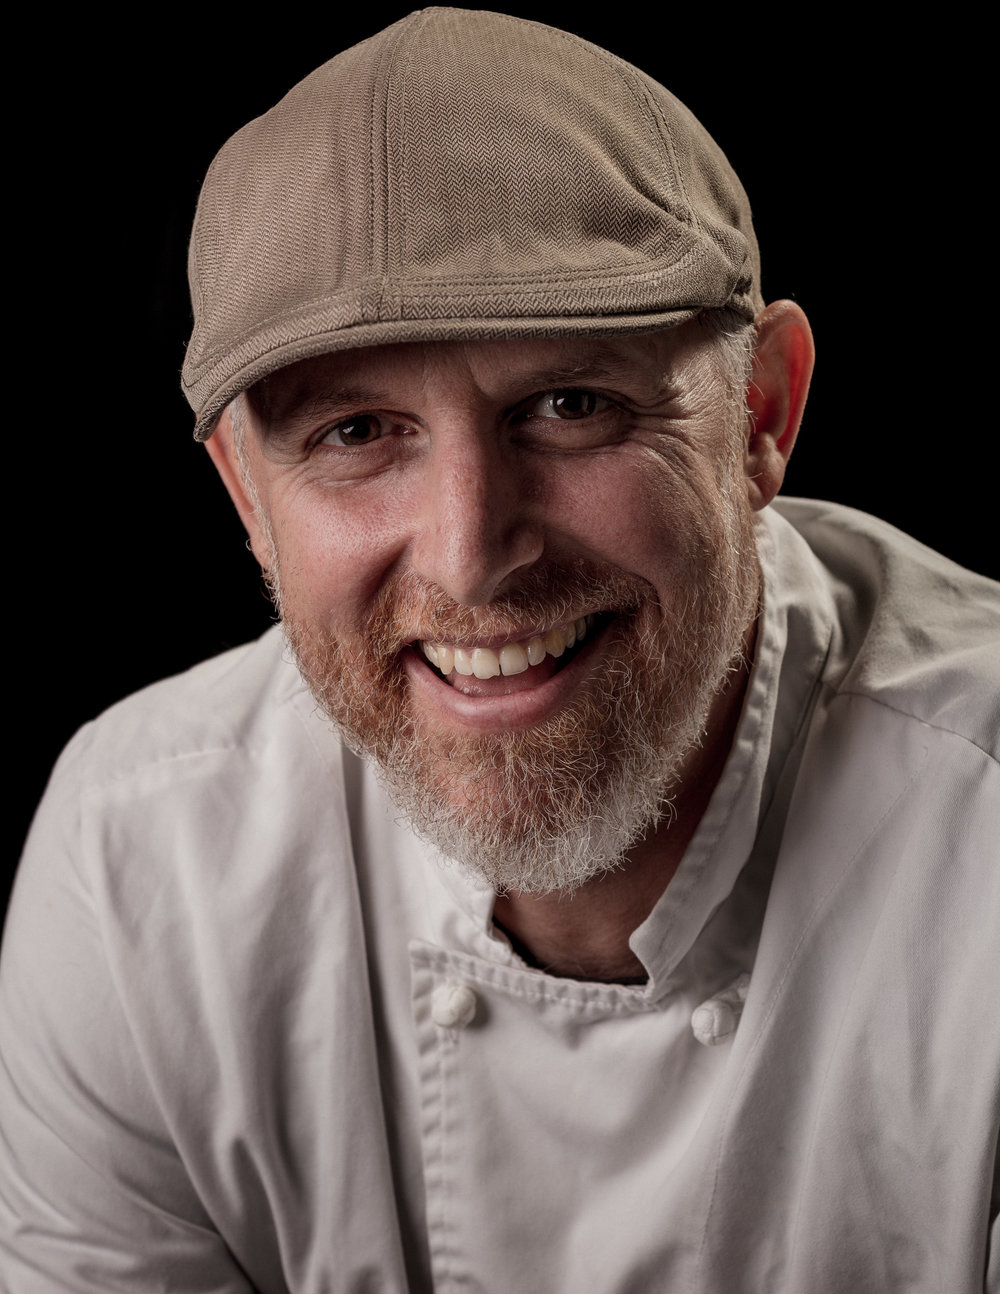 Steve Duke - chef & owner of  No Fixed Address catering . Formerly of Vancouver, now supporting Cape Town productions & an Obz street food restaurant.